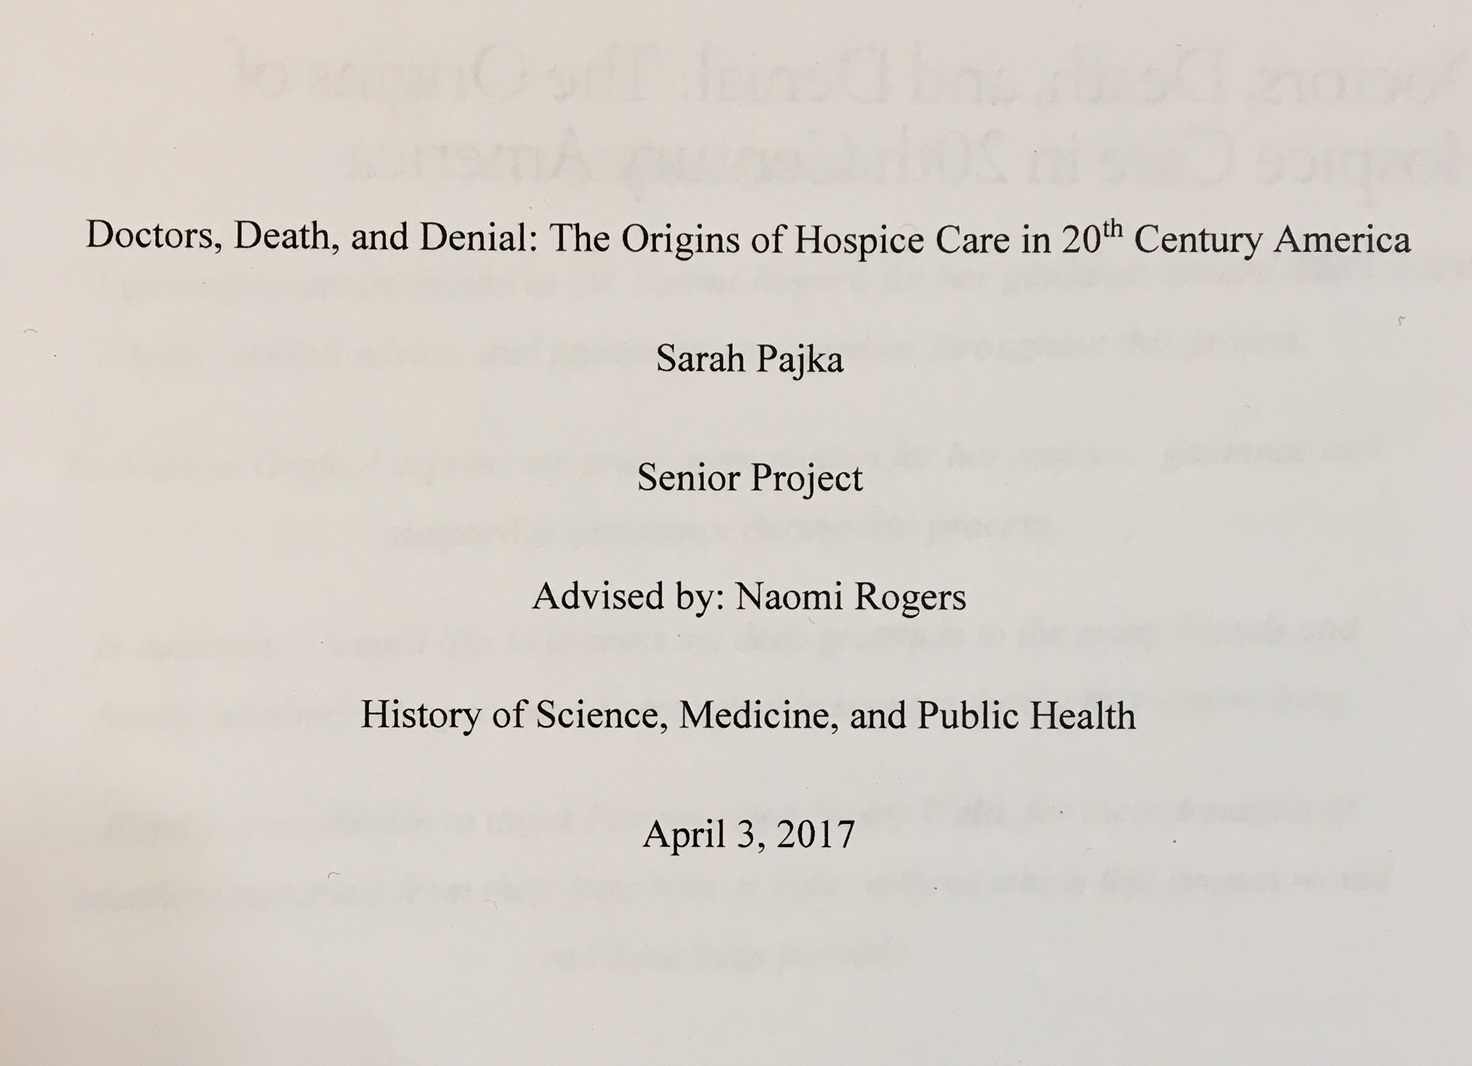 English 101 Essay Title Page Of Sarah Pajkas Senior Essay Doctors Death And Denial Persuasive Essay Samples High School also Sample Essay High School Winners Of The  Manuscripts And Archives Diane Kaplan Memorial  Easy Essay Topics For High School Students